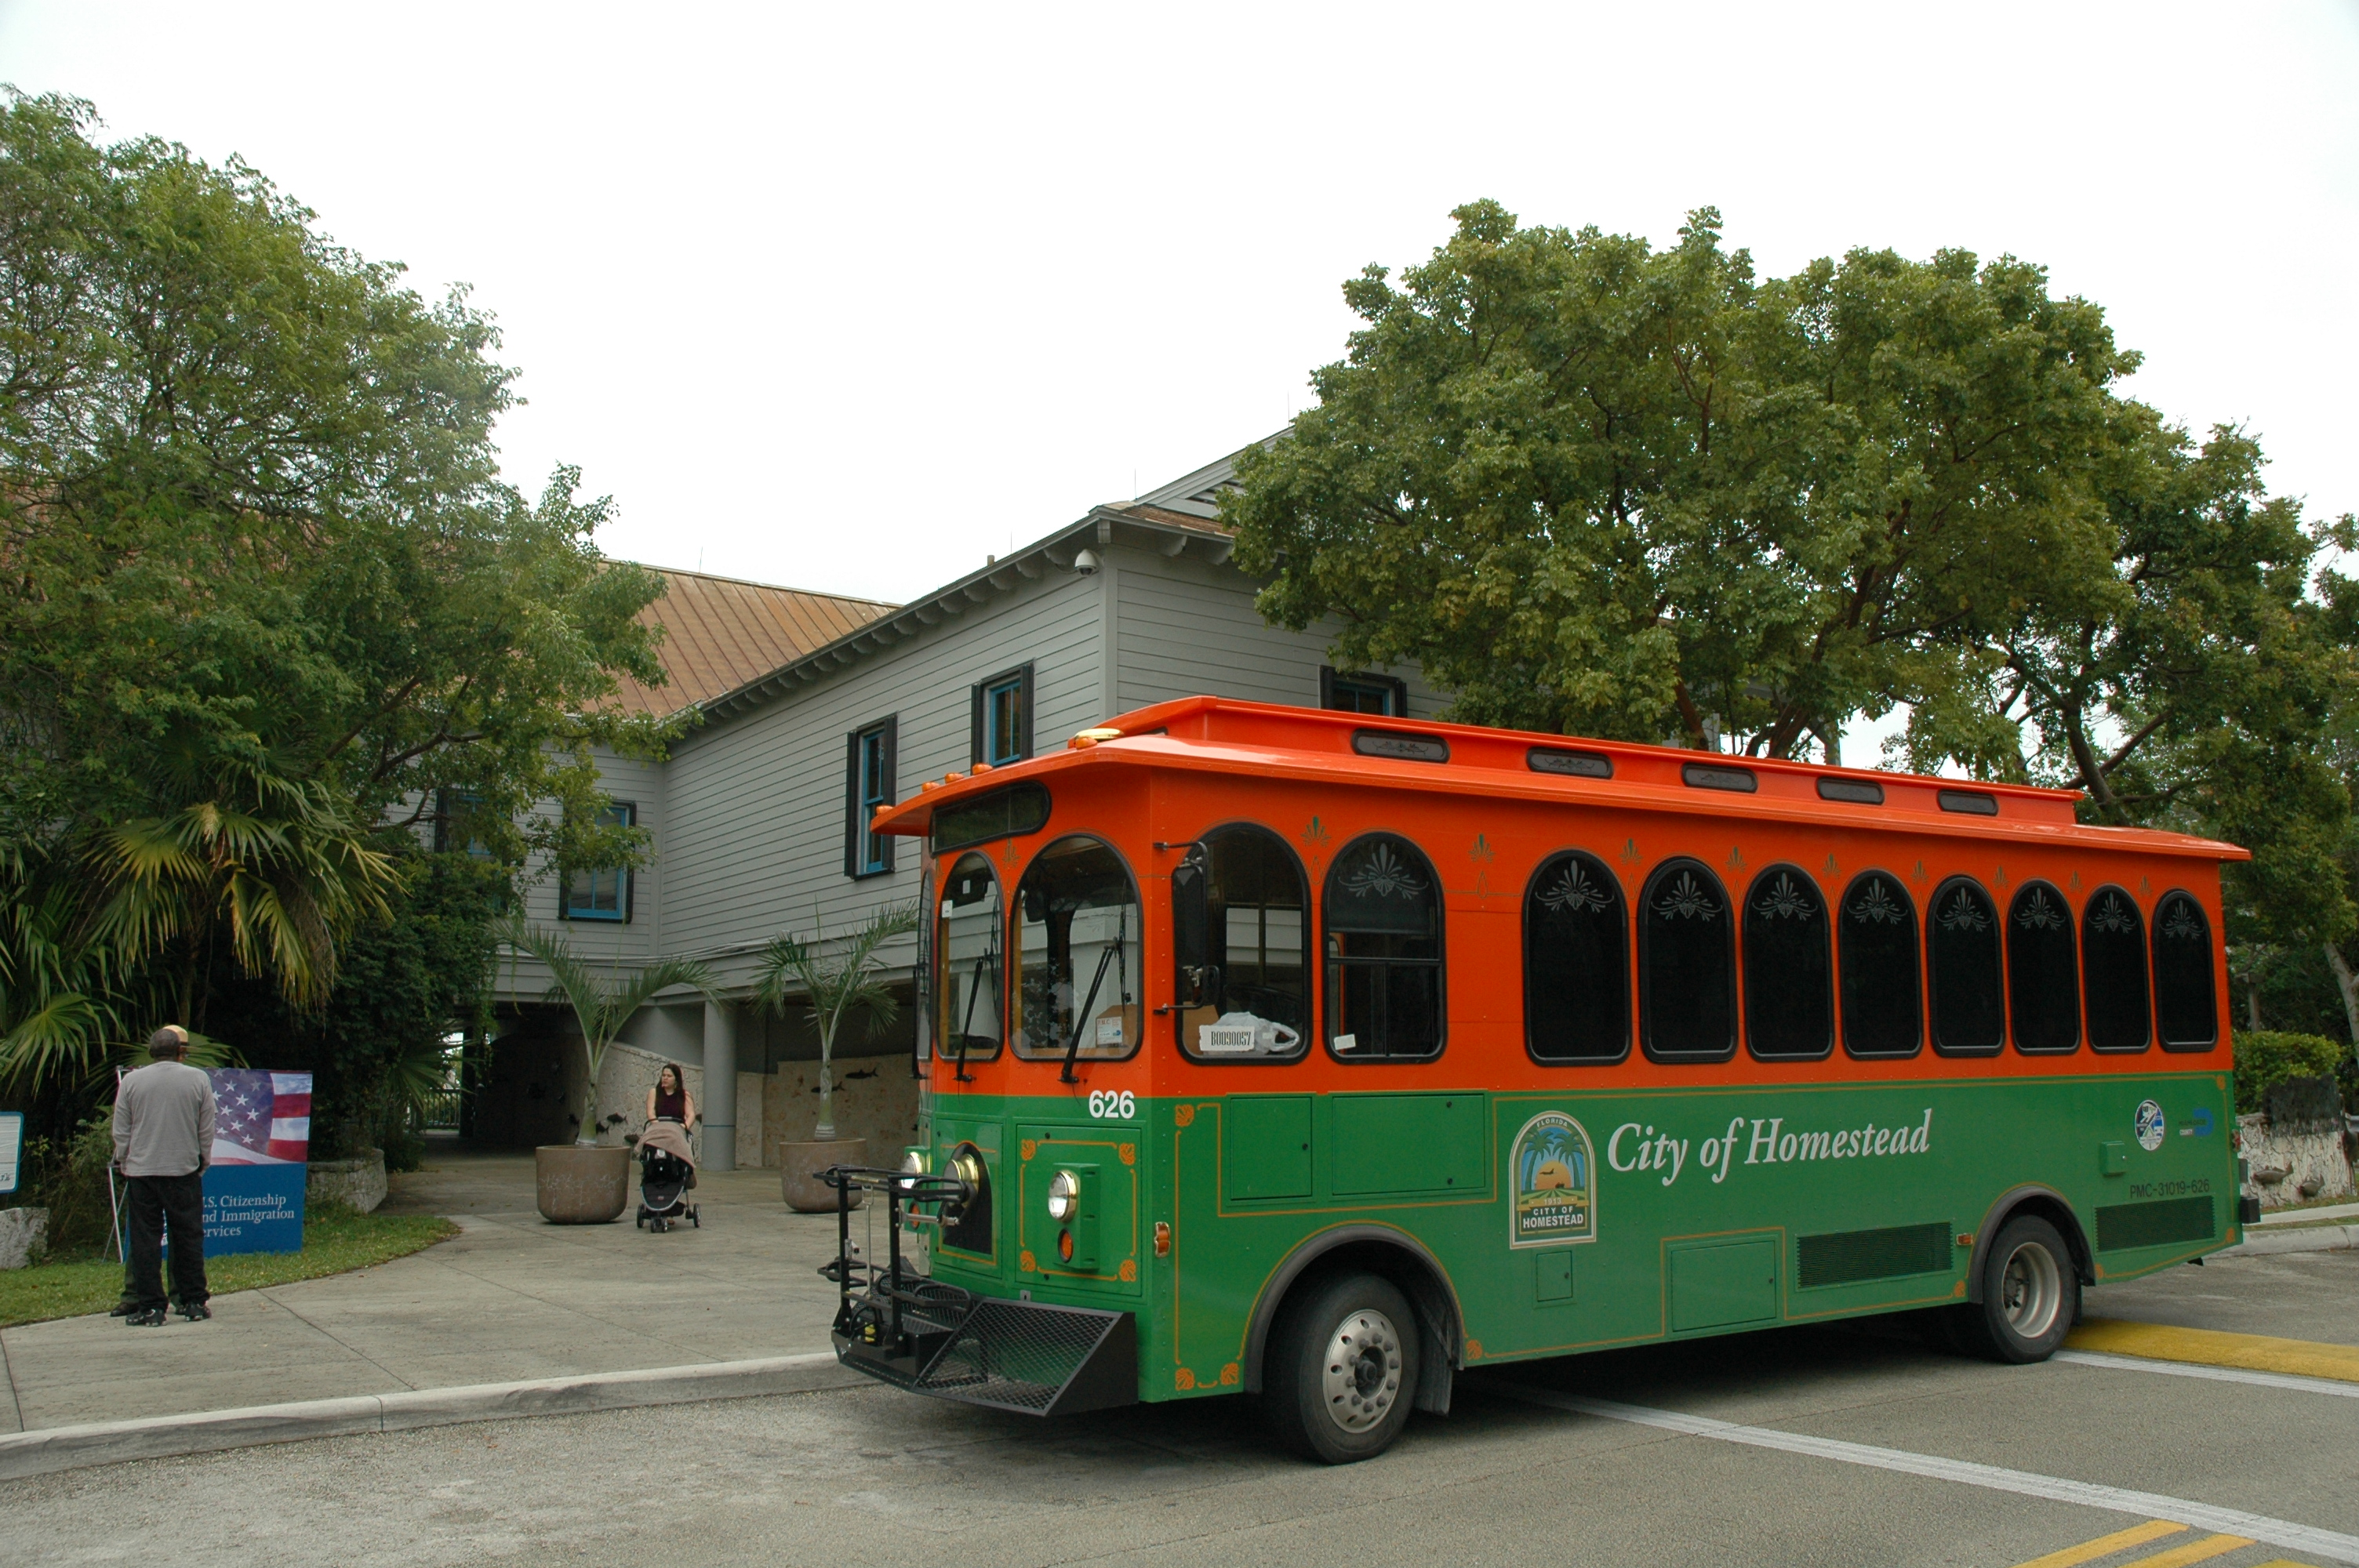 The Homestead National Parks Trolley takes you to Biscayne National Park for free!